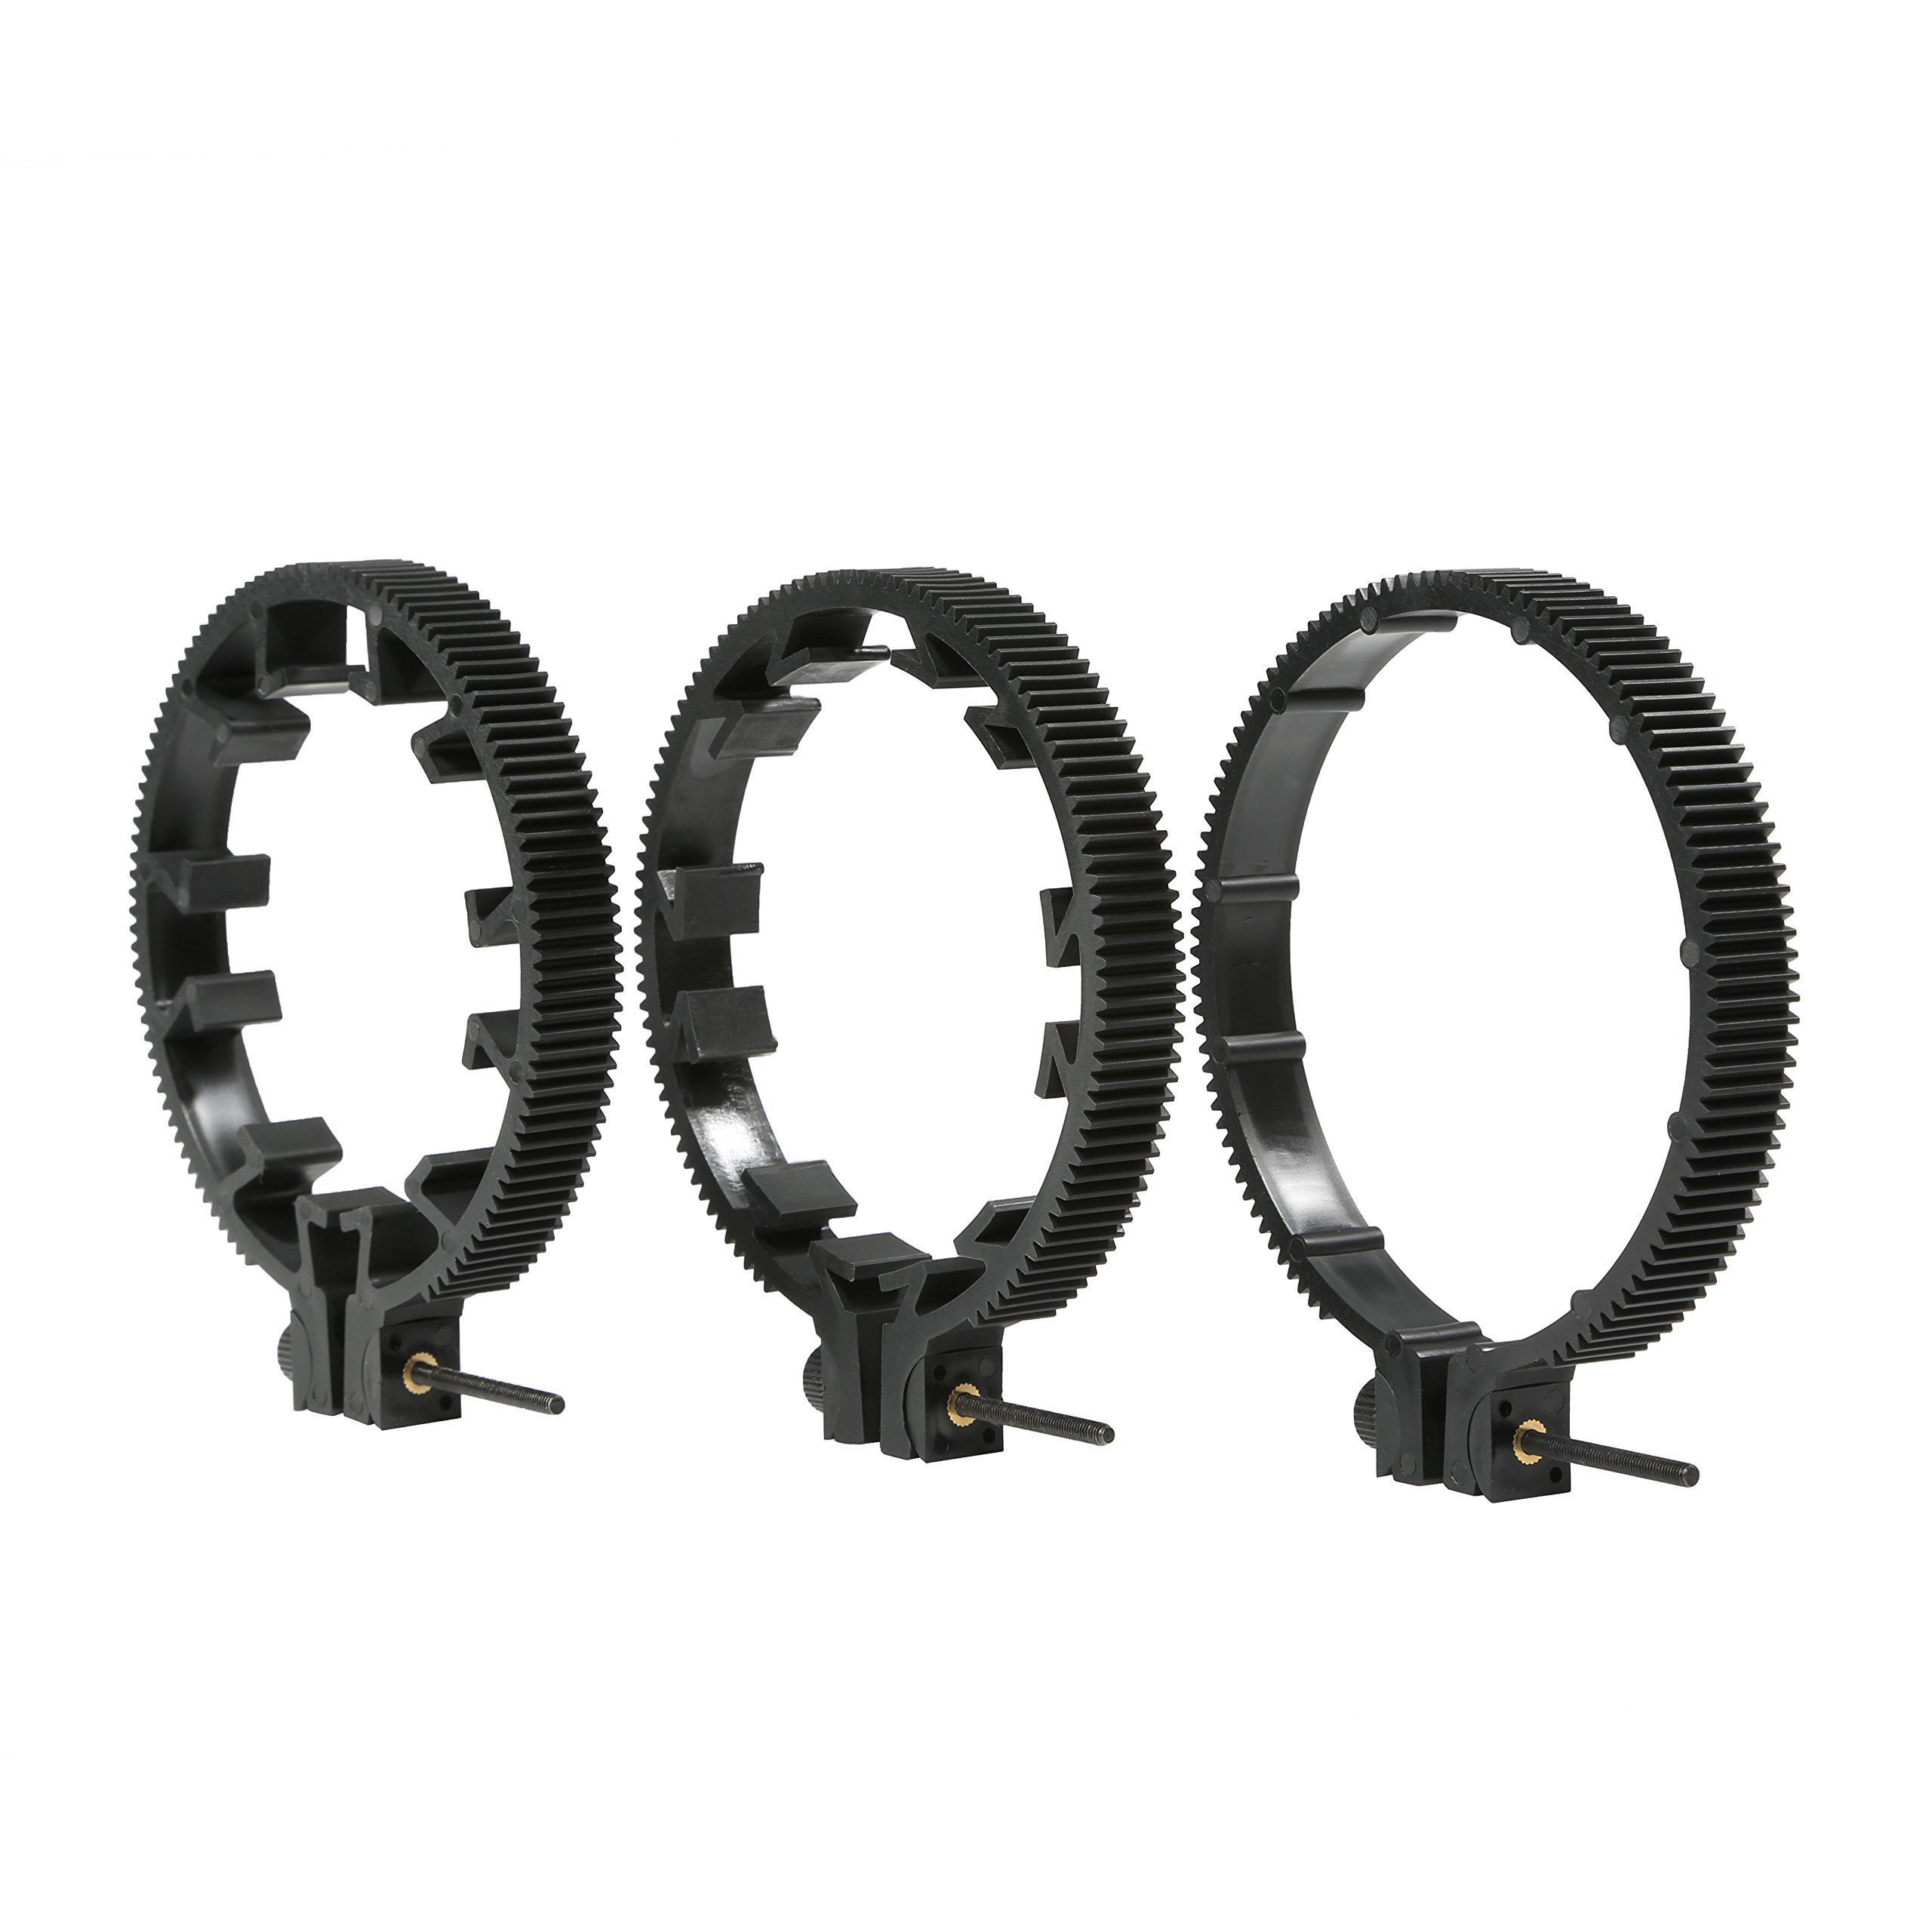 Movo FR3 Adjustable 3-Piece Follow Focus Ring Gear Set - Includes 65mm, 75mm and 85mm Lens Rings (Standard 32 Pitch - 0.8 mod) by Movo